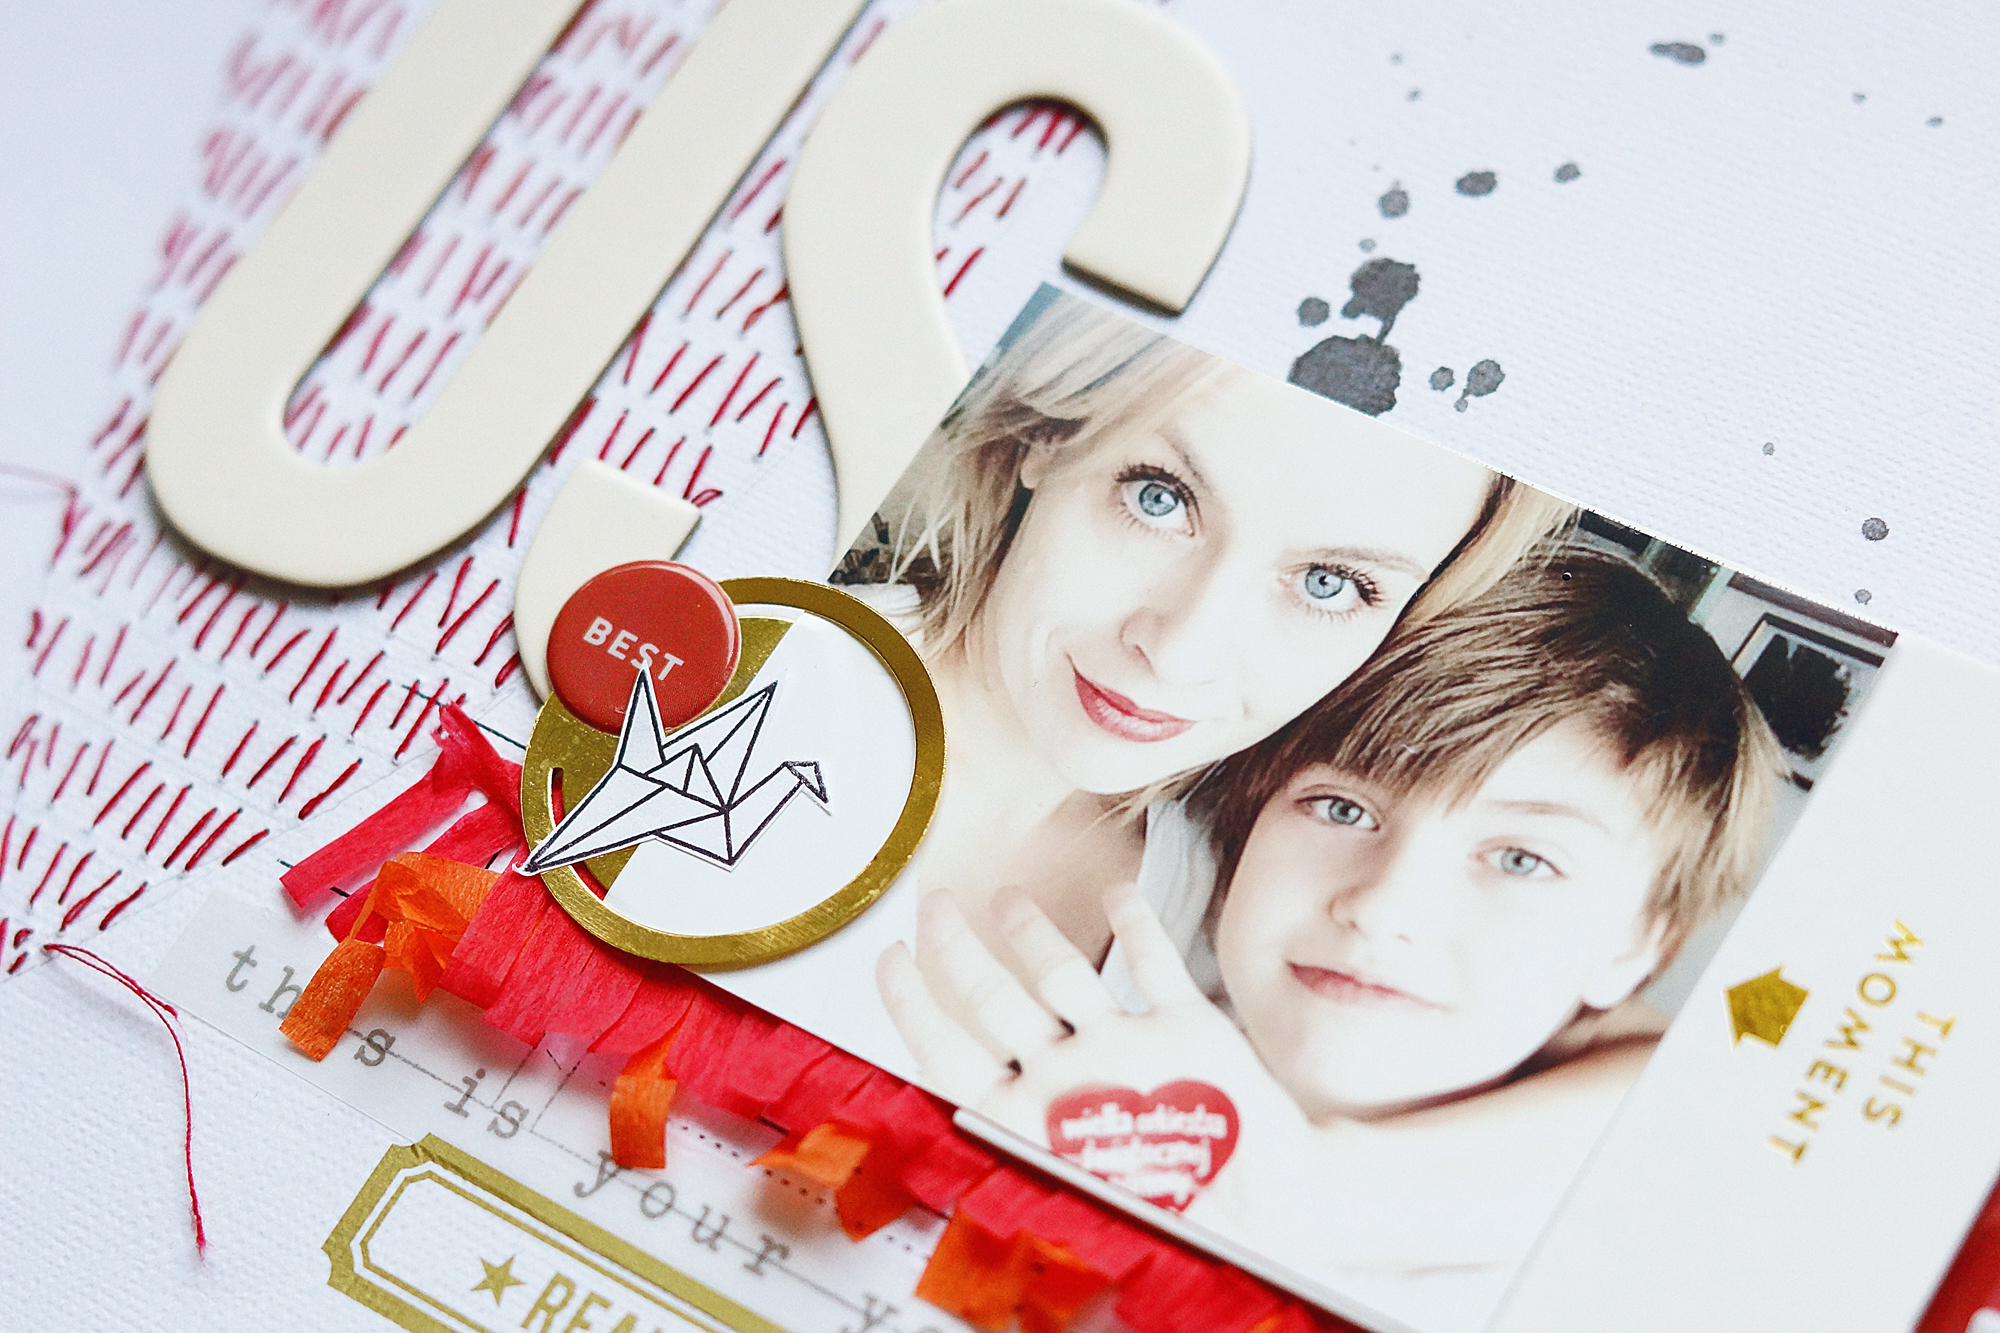 Tutorial: Using the Arendal Scrapbook Kit with Anna-Maria Wolniak